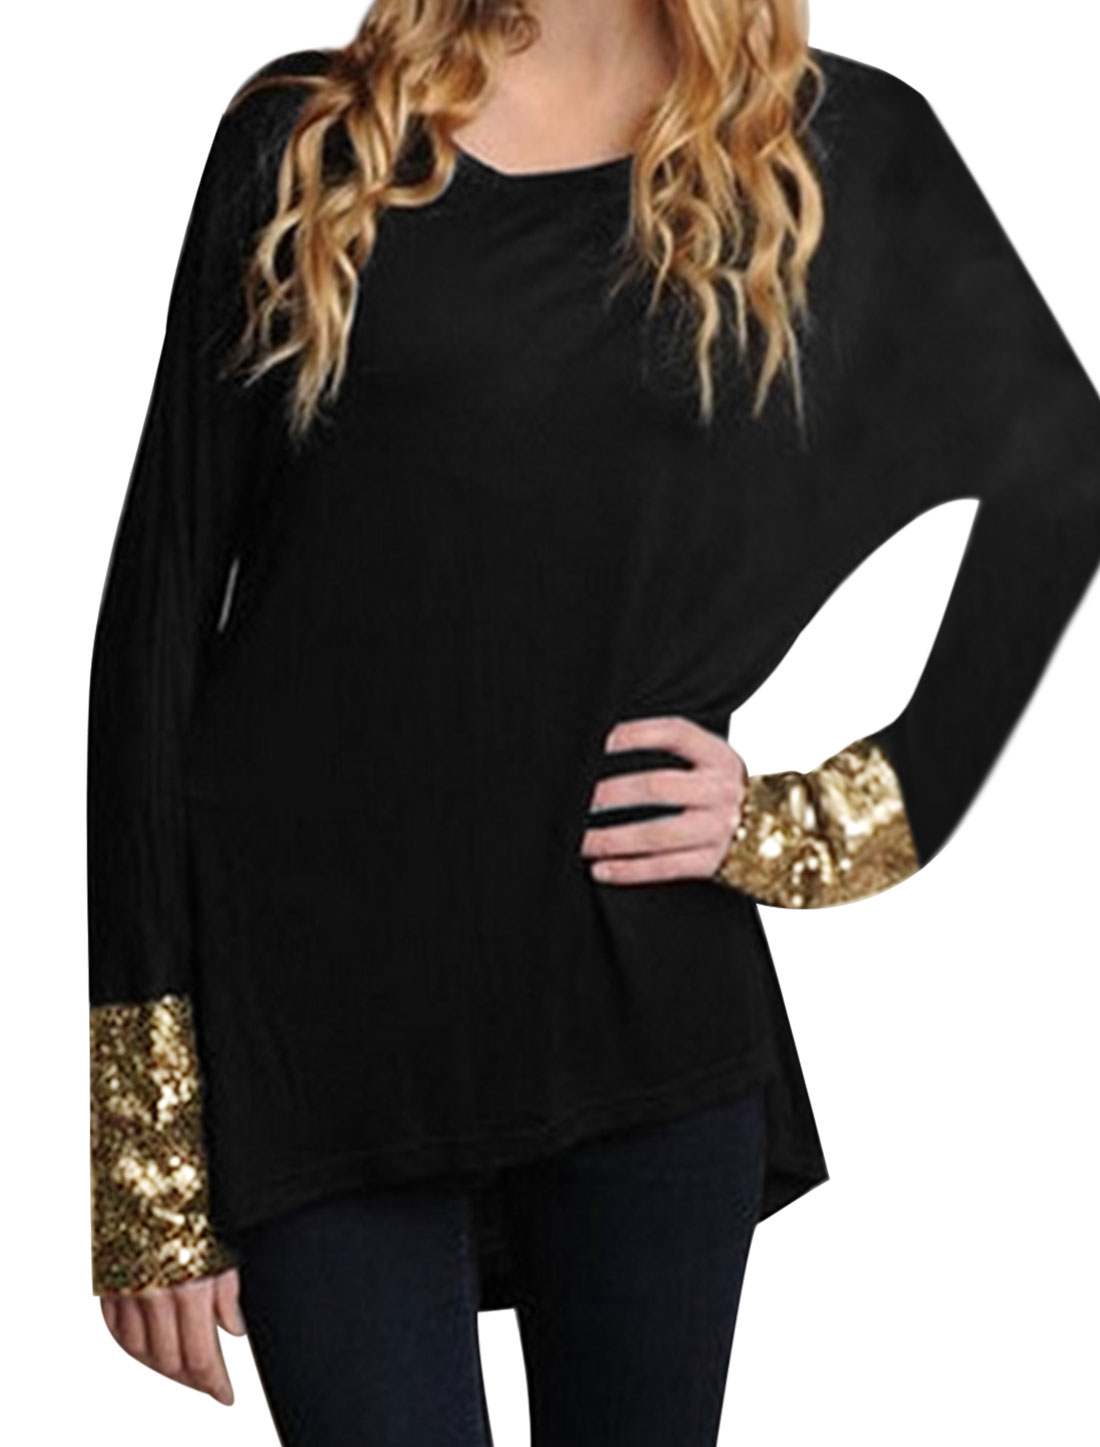 Lady Raglan Sleeves Sequins Decor High Low Hem Loose Fit Tunic Top Black S